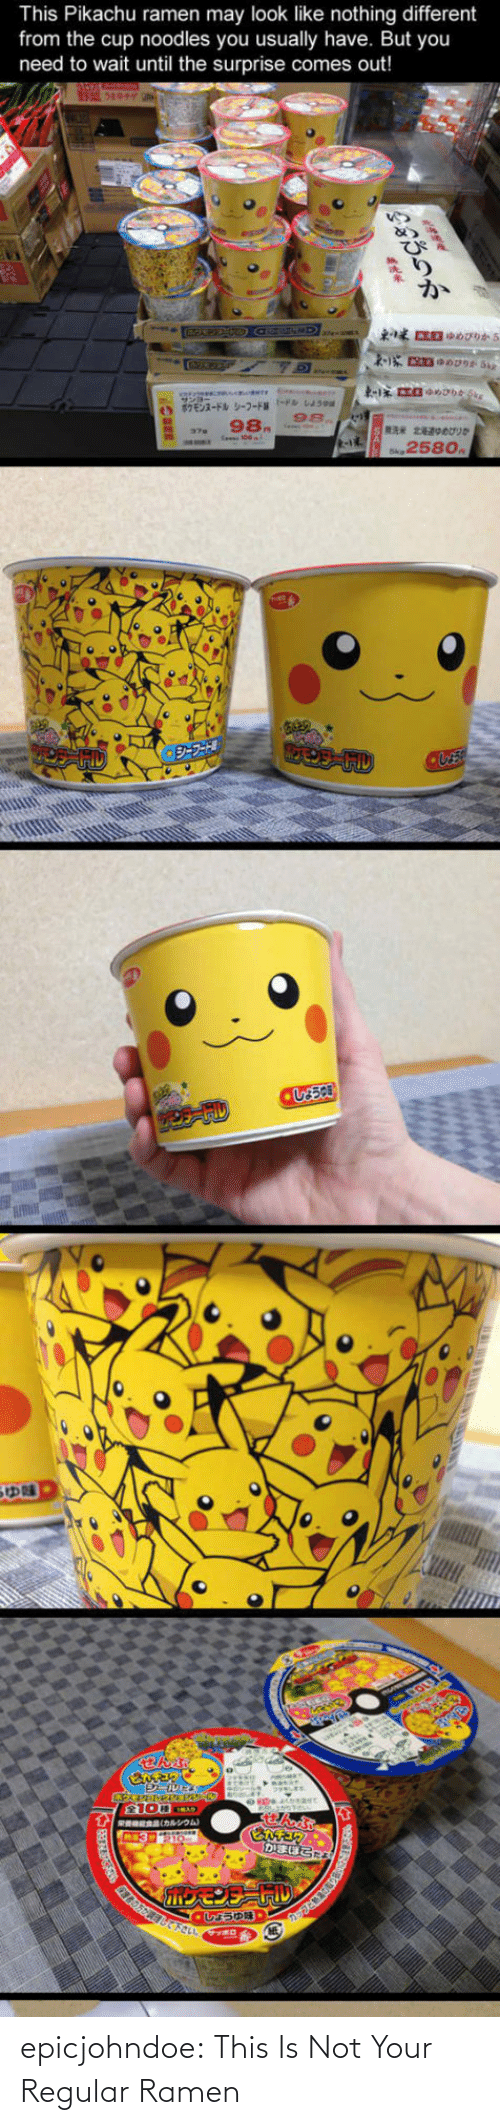 cup: This Pikachu ramen may look like nothing different  from the cup noodles you usually have. But you  need to wait until the surprise comes out!  98.  258o epicjohndoe:  This Is Not Your Regular Ramen